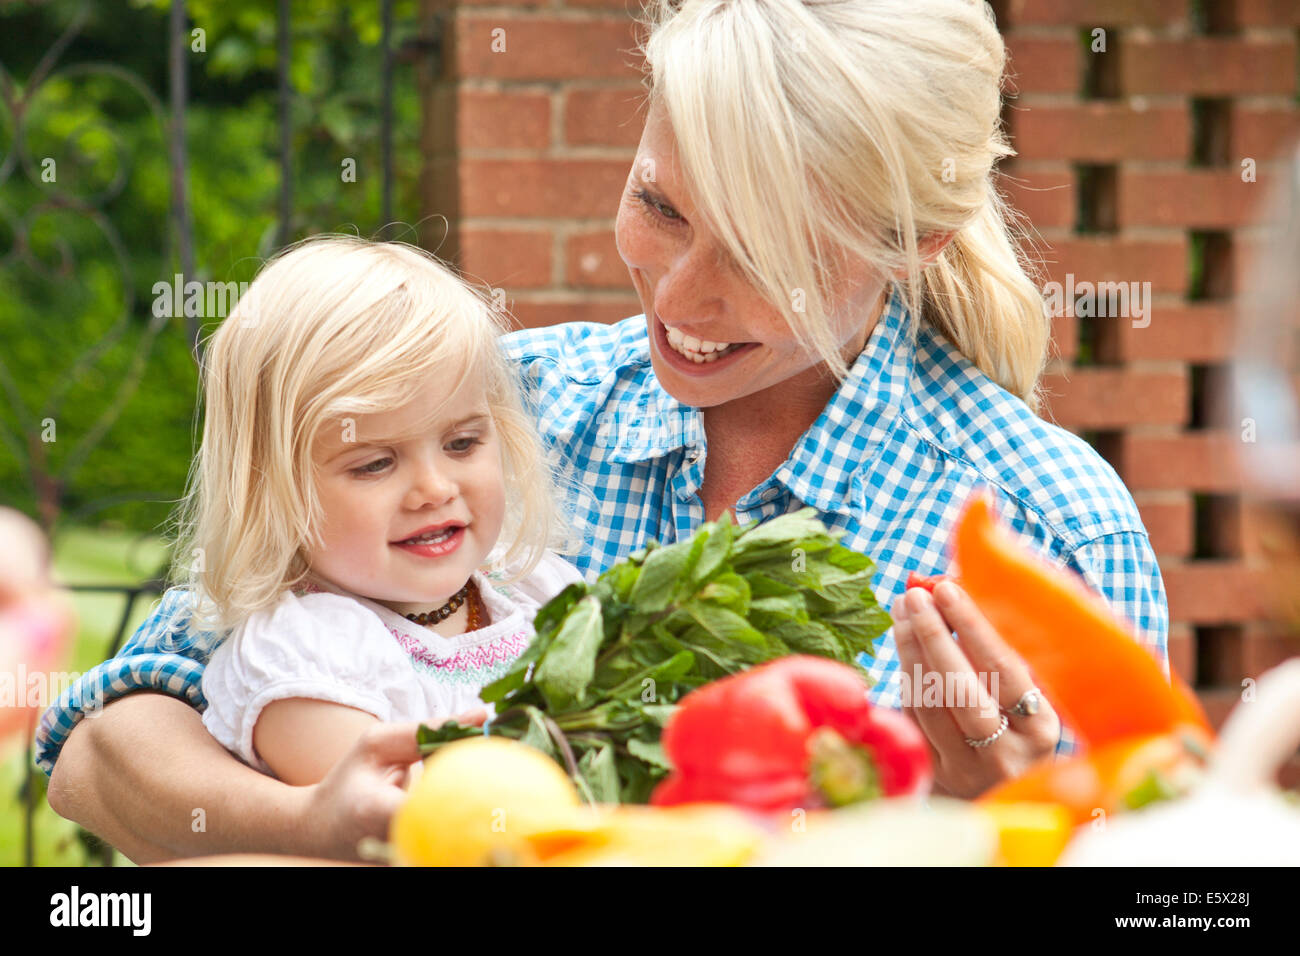 Mother and toddler daughter preparing food at garden table - Stock Image